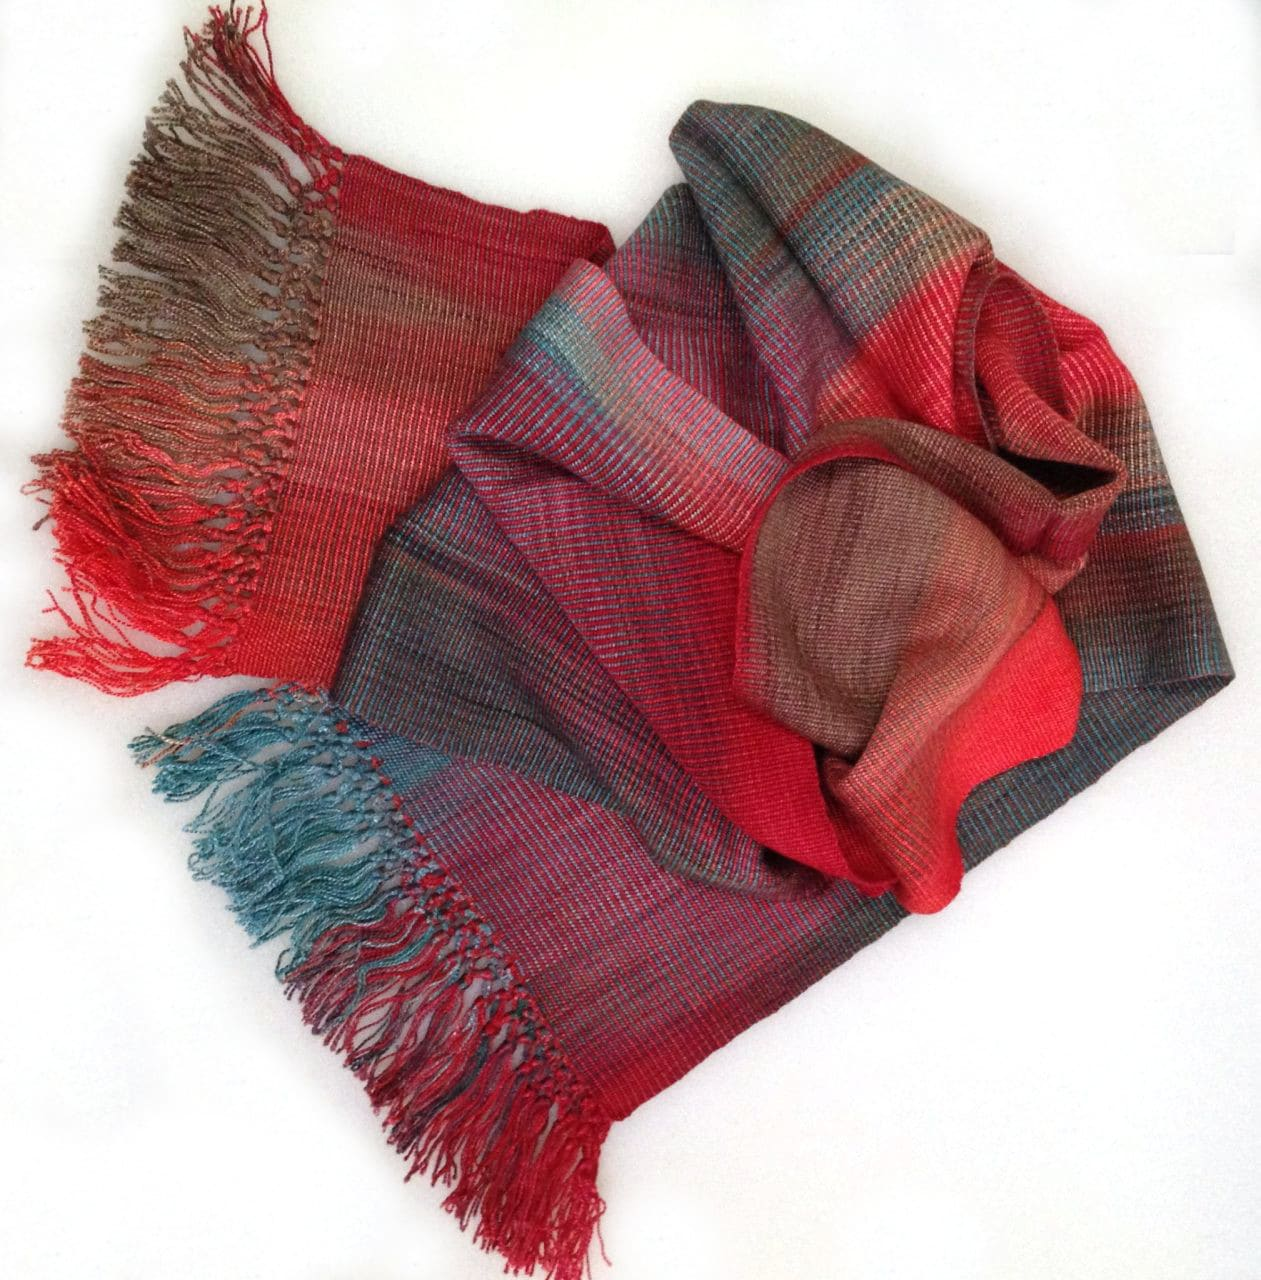 Turquoise, Coral - Lightweight Bamboo Handwoven Scarf 8 x 68